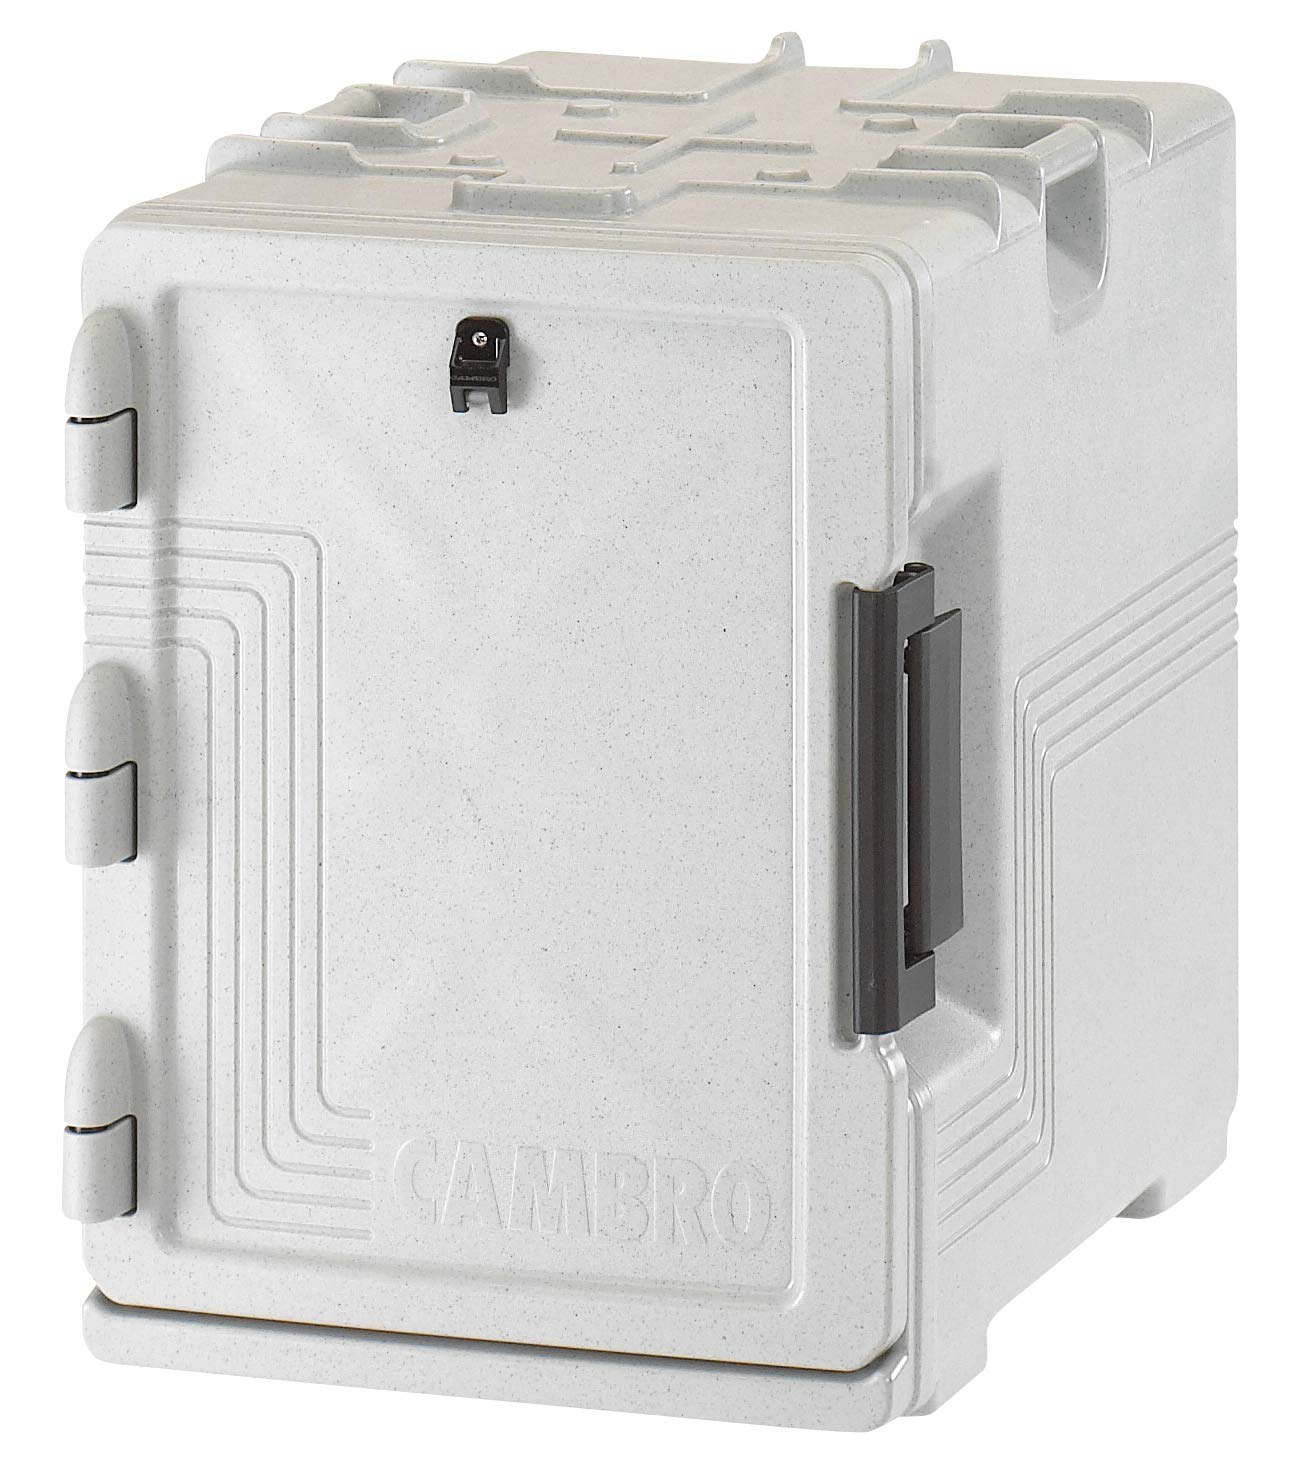 Cambro UPCS400480 Ultra Camcarrier S-Series Speckled Gray Pan Carrier Case of 1